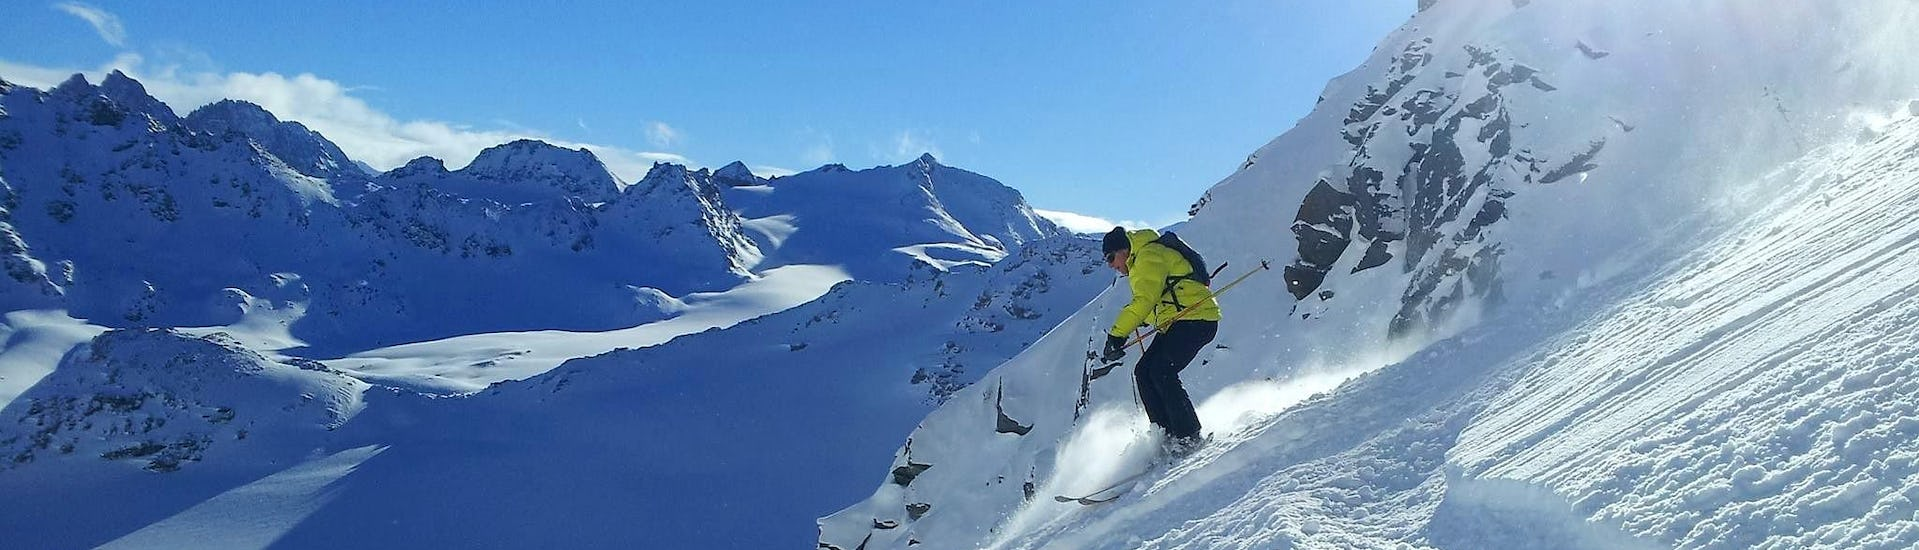 A skier is skiing down a slope with confidence during his Private Ski Lessons for Adults - All Levels with the Swiss Ski School La Tzoumaz.